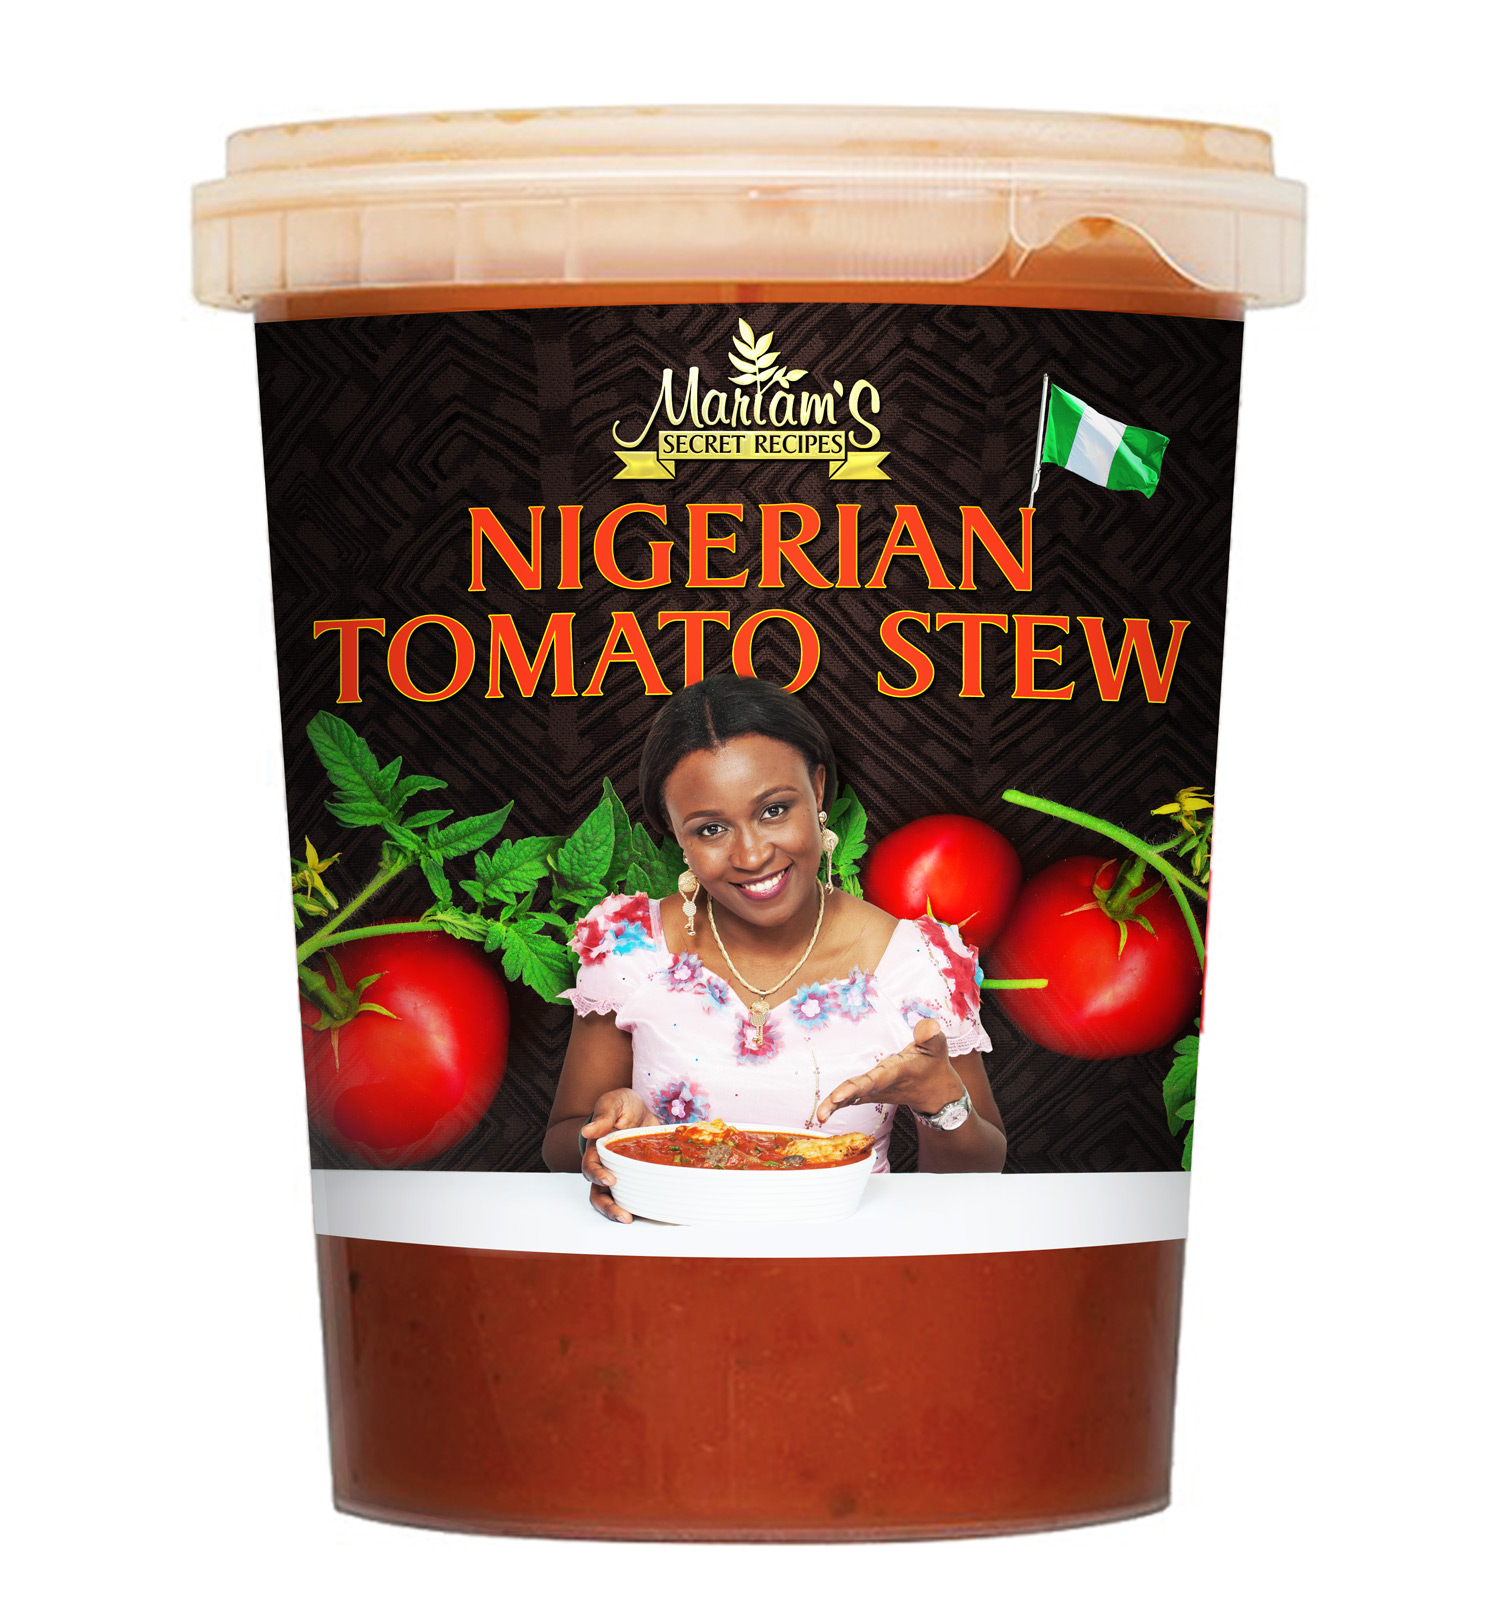 Nigerian Tomato Stew packaging design